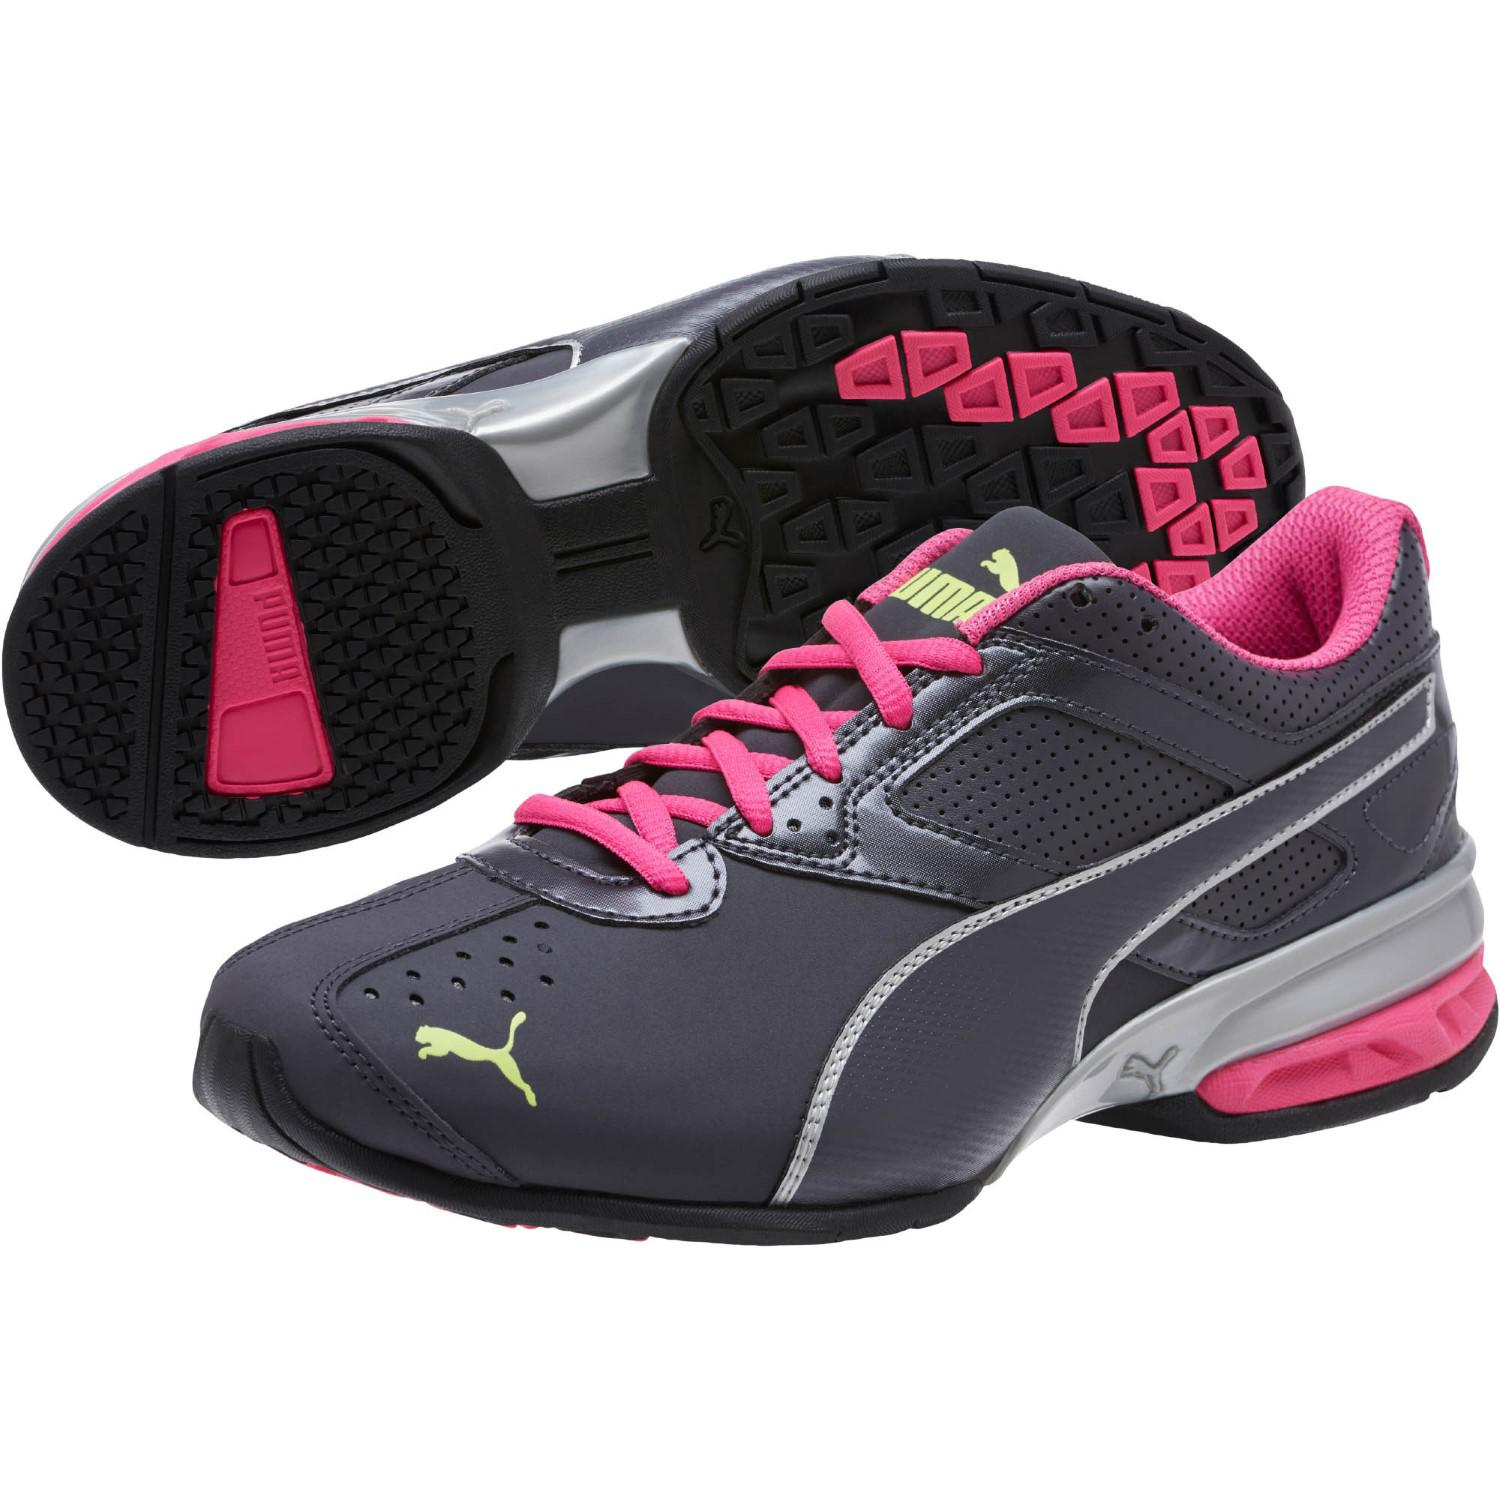 Lyst - Puma Tazon 6 Fm Running Shoes in Black ee74d9544